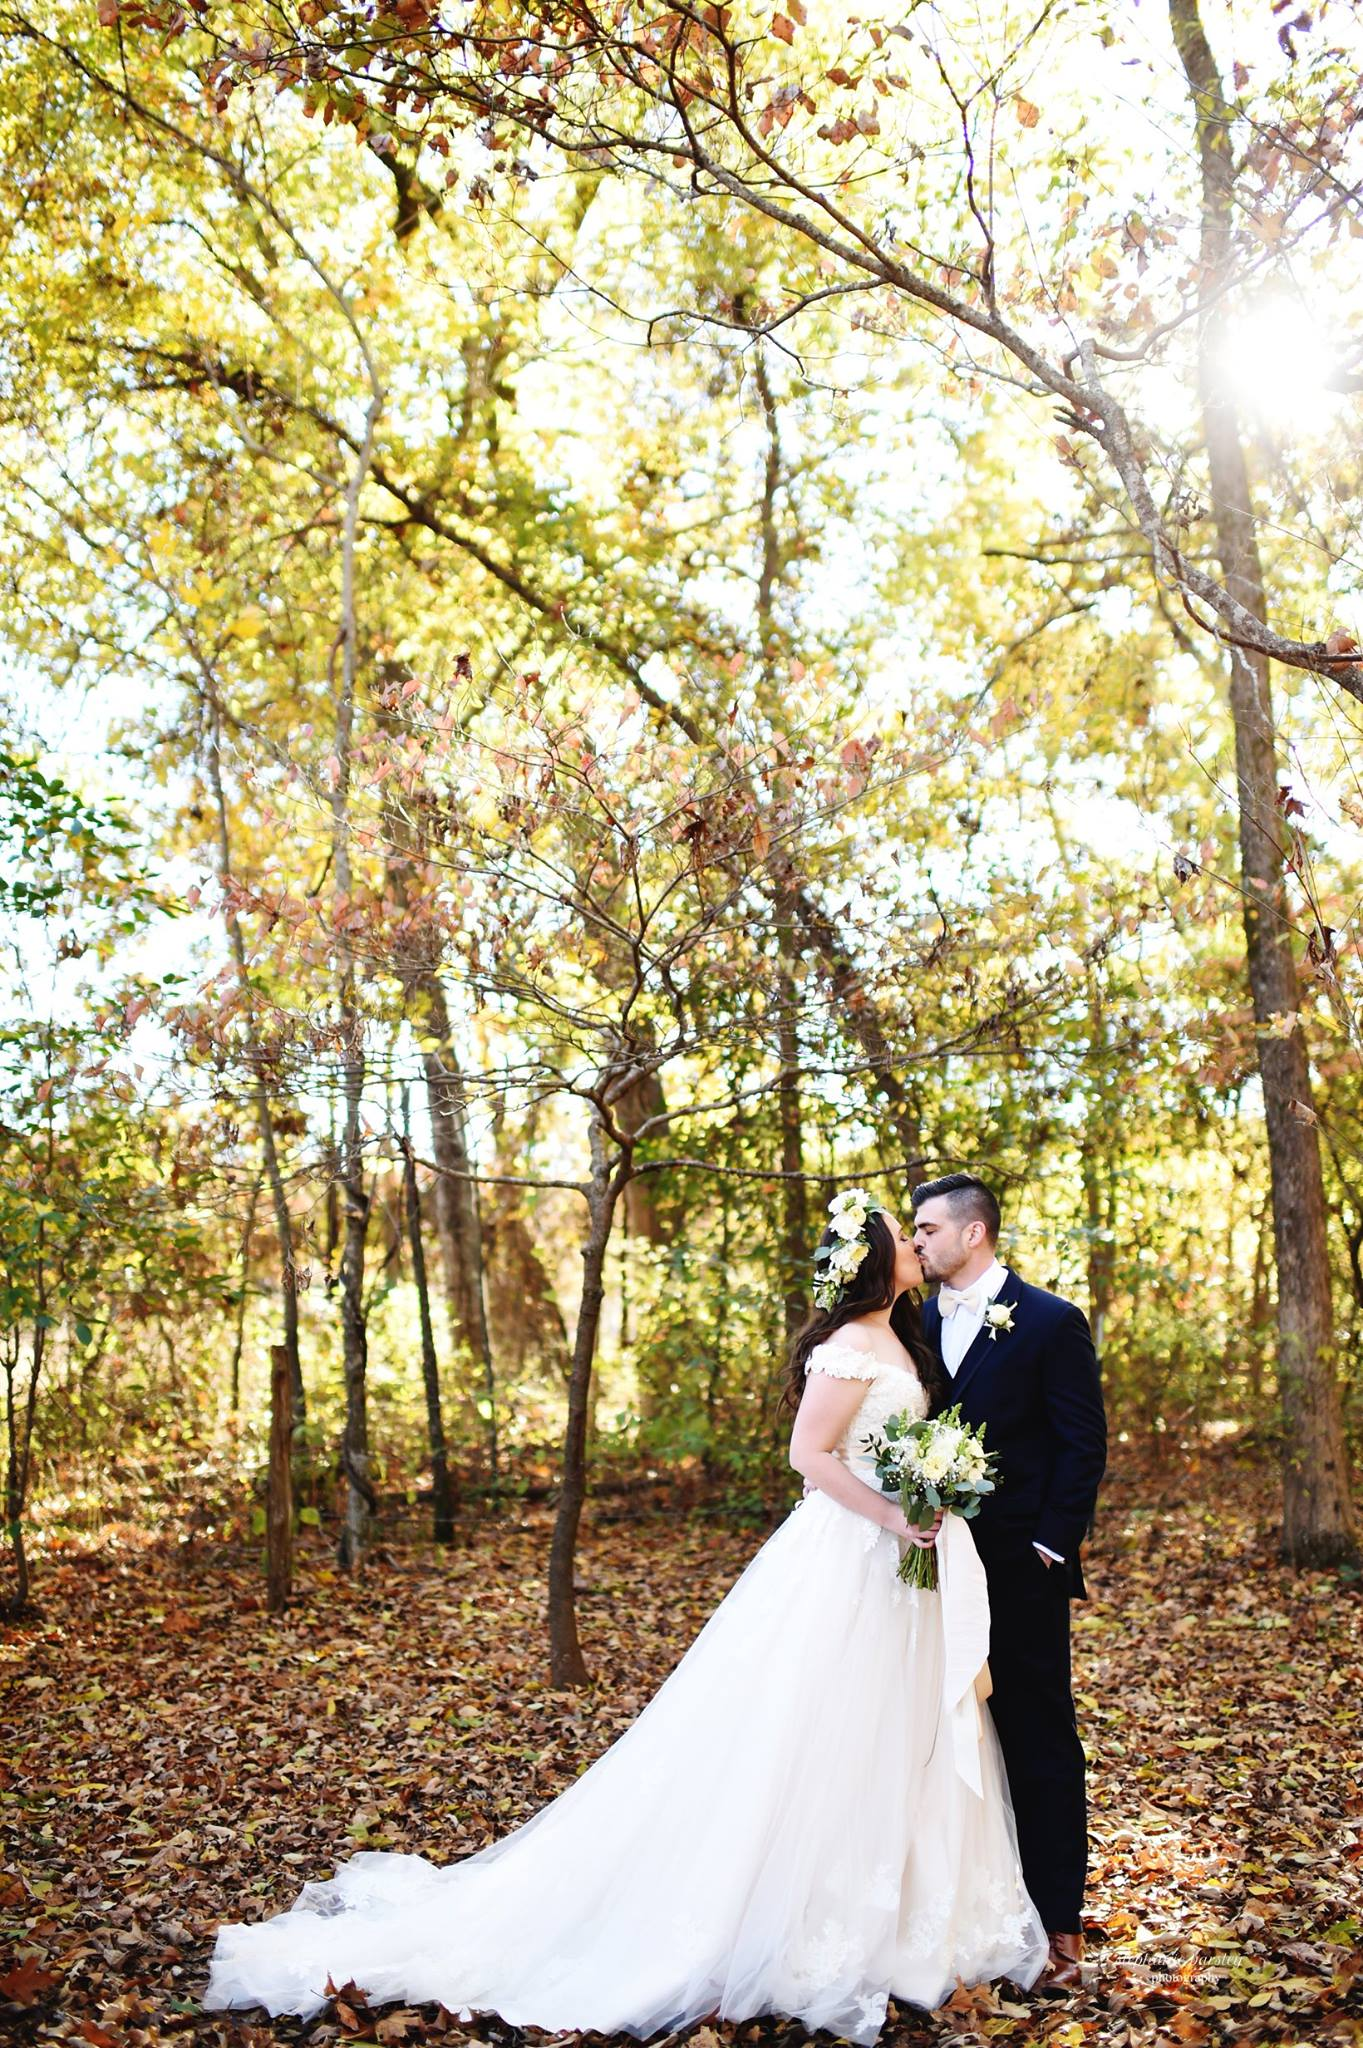 Stephanie Parsley Photography , from  Whitney + Jimmy 's wedding